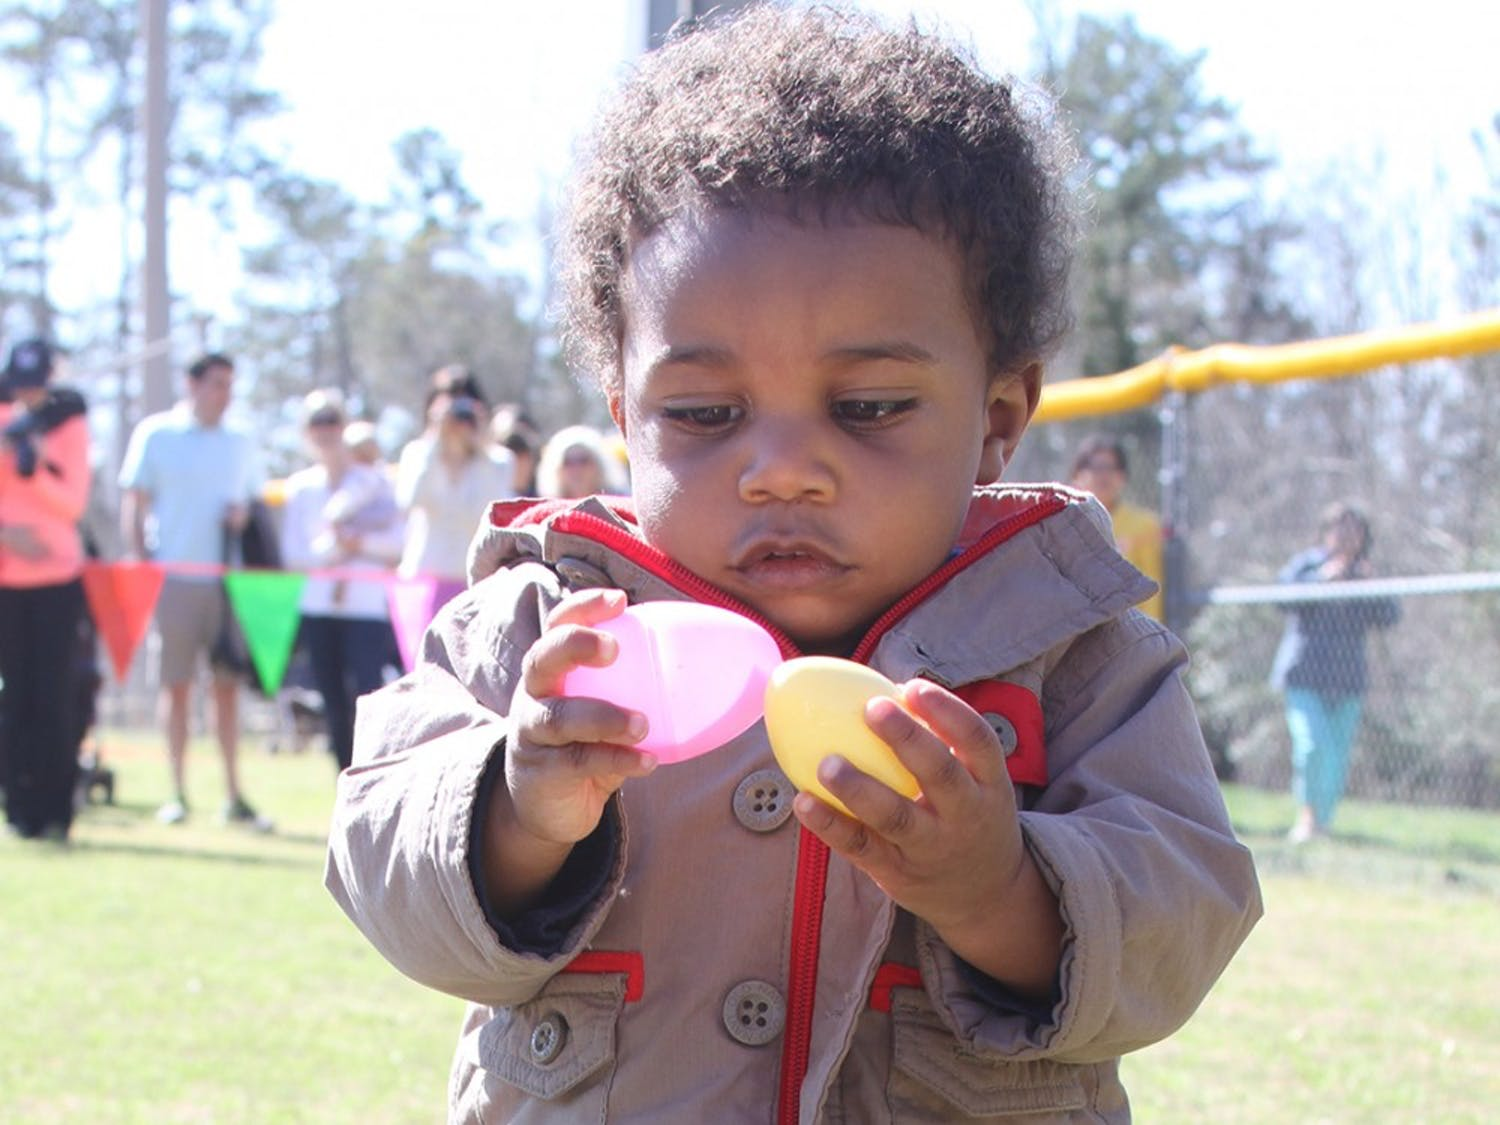 Kids participate in an egg hunt at Homestead Park in Chapel Hill on April 5.